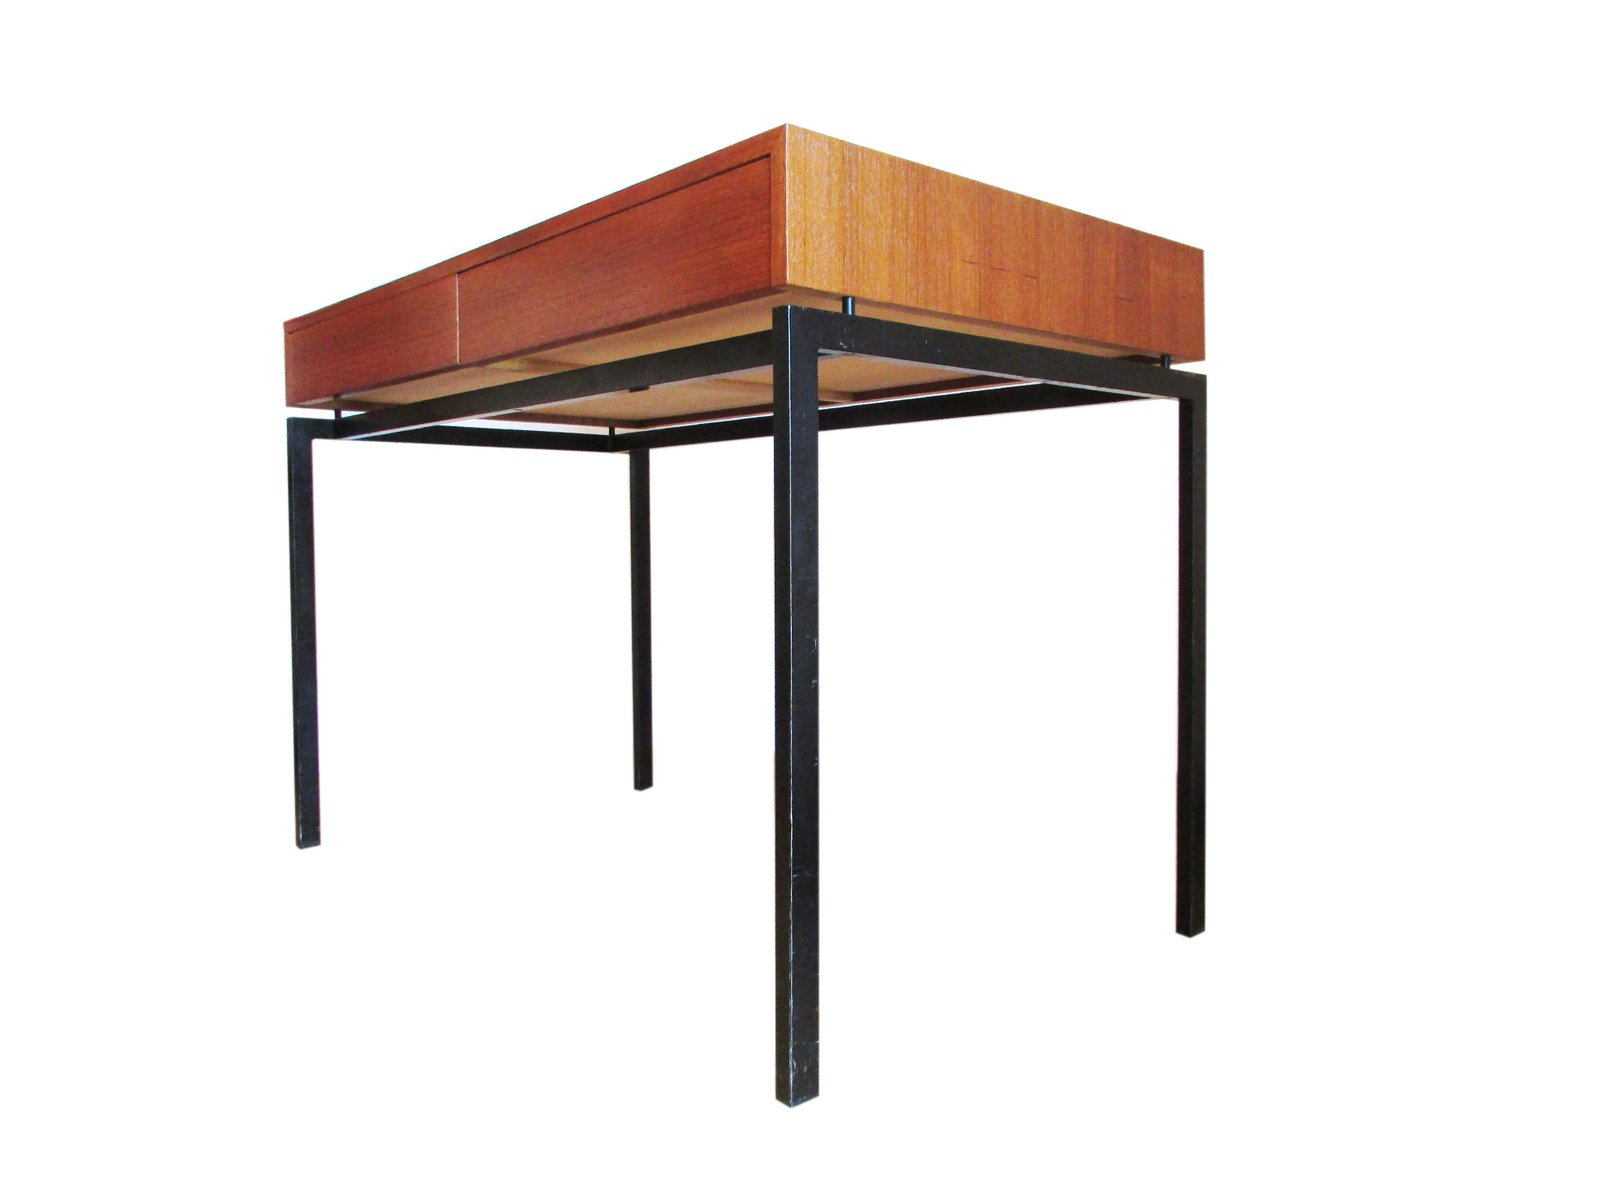 Swiss Minimalist Teak Desk From Zingg Lamprecht For Sale